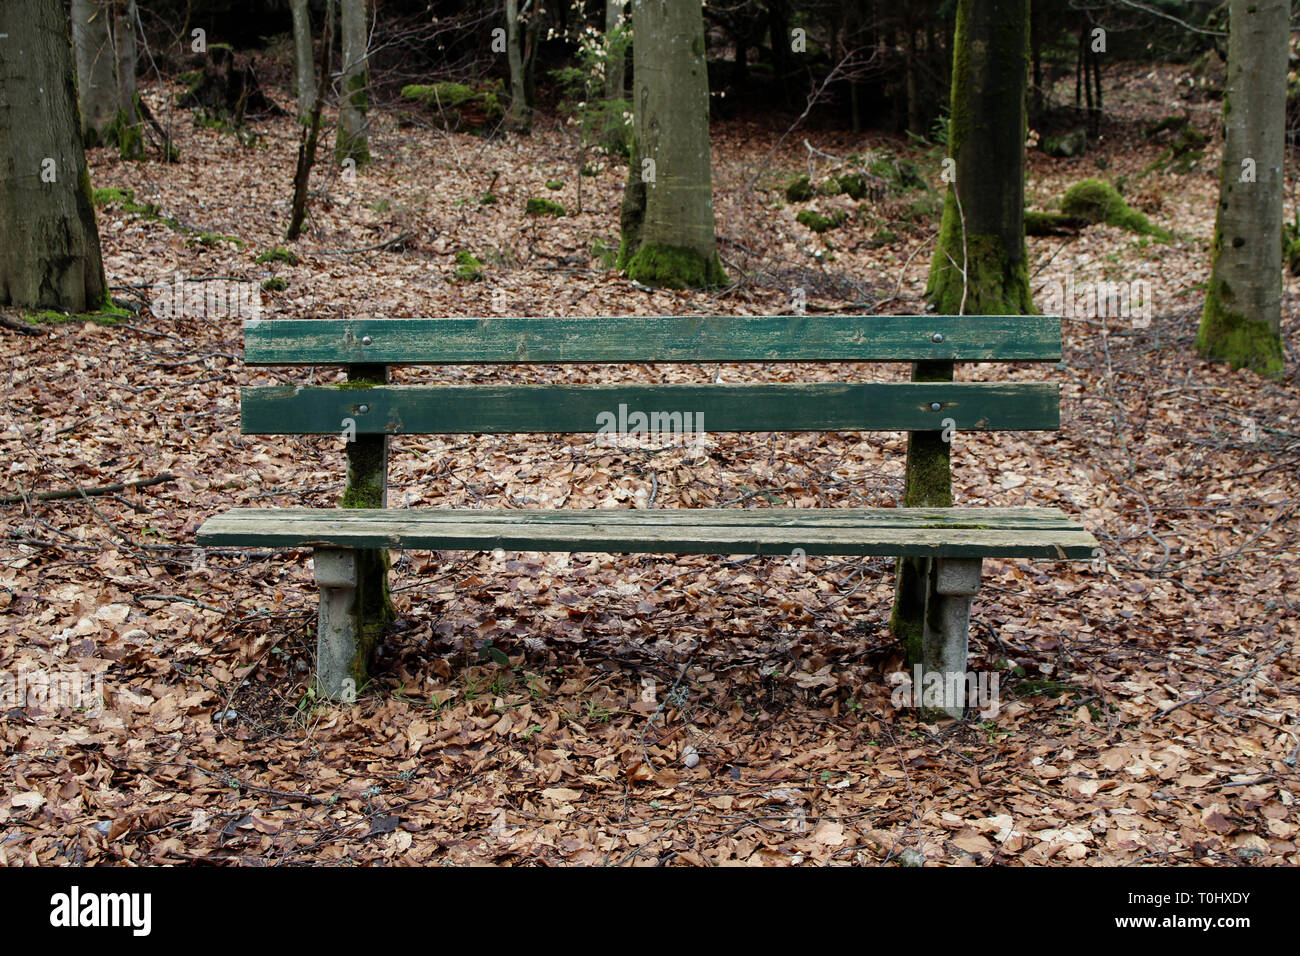 green bench - Stock Image